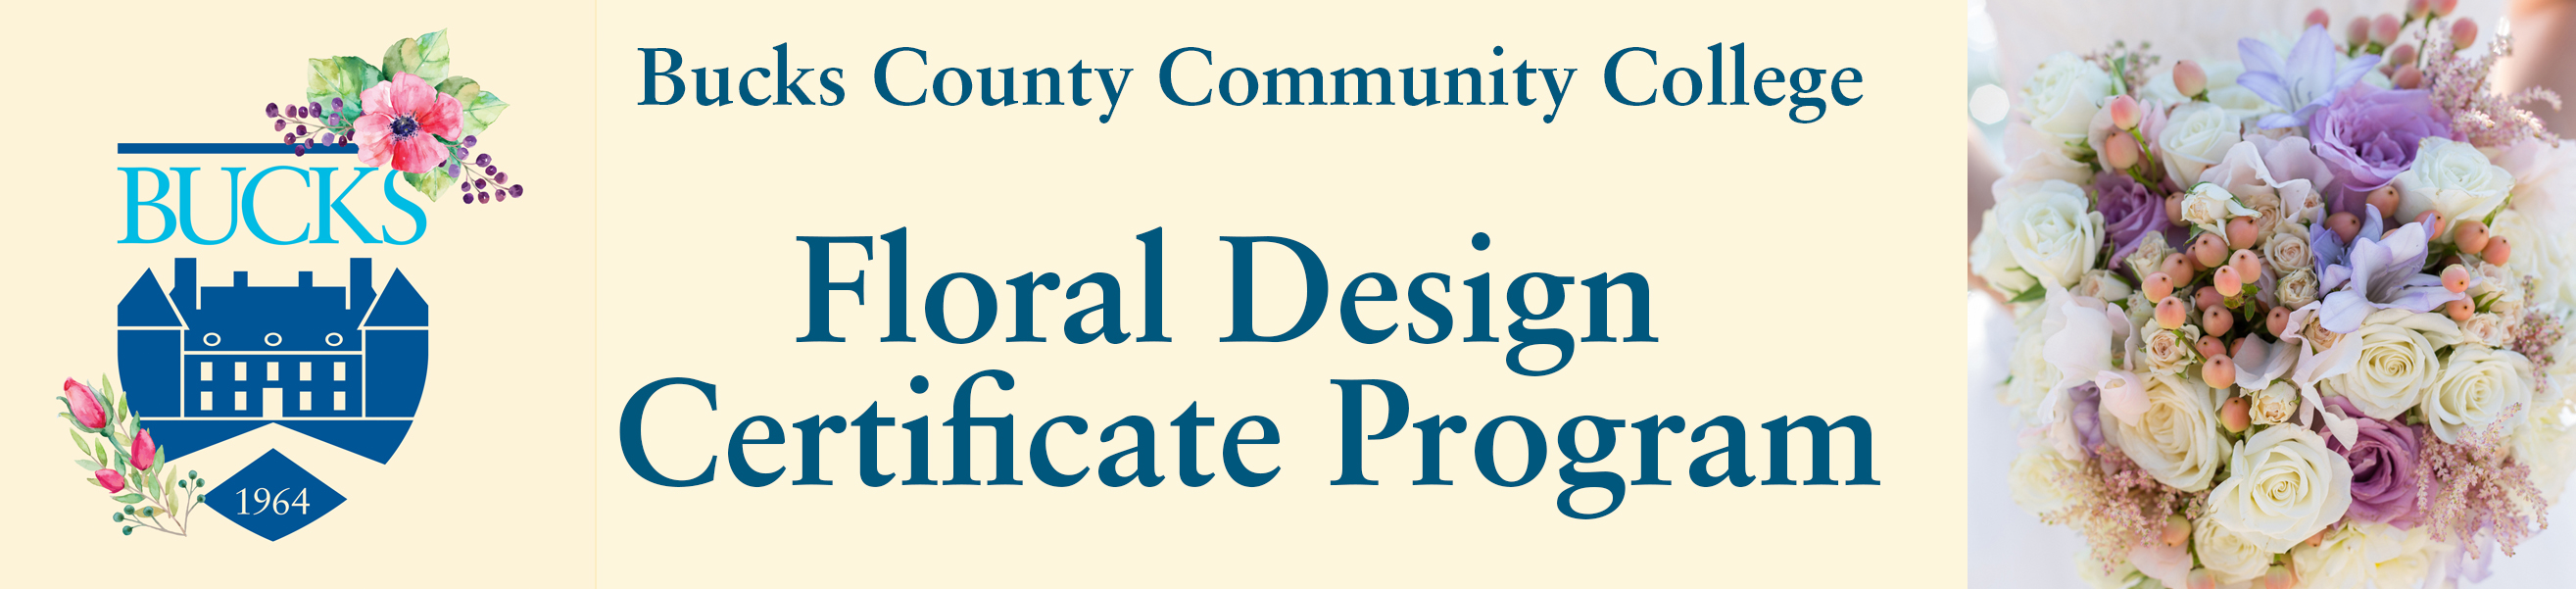 Floral Design Business Career Bucks County Community College